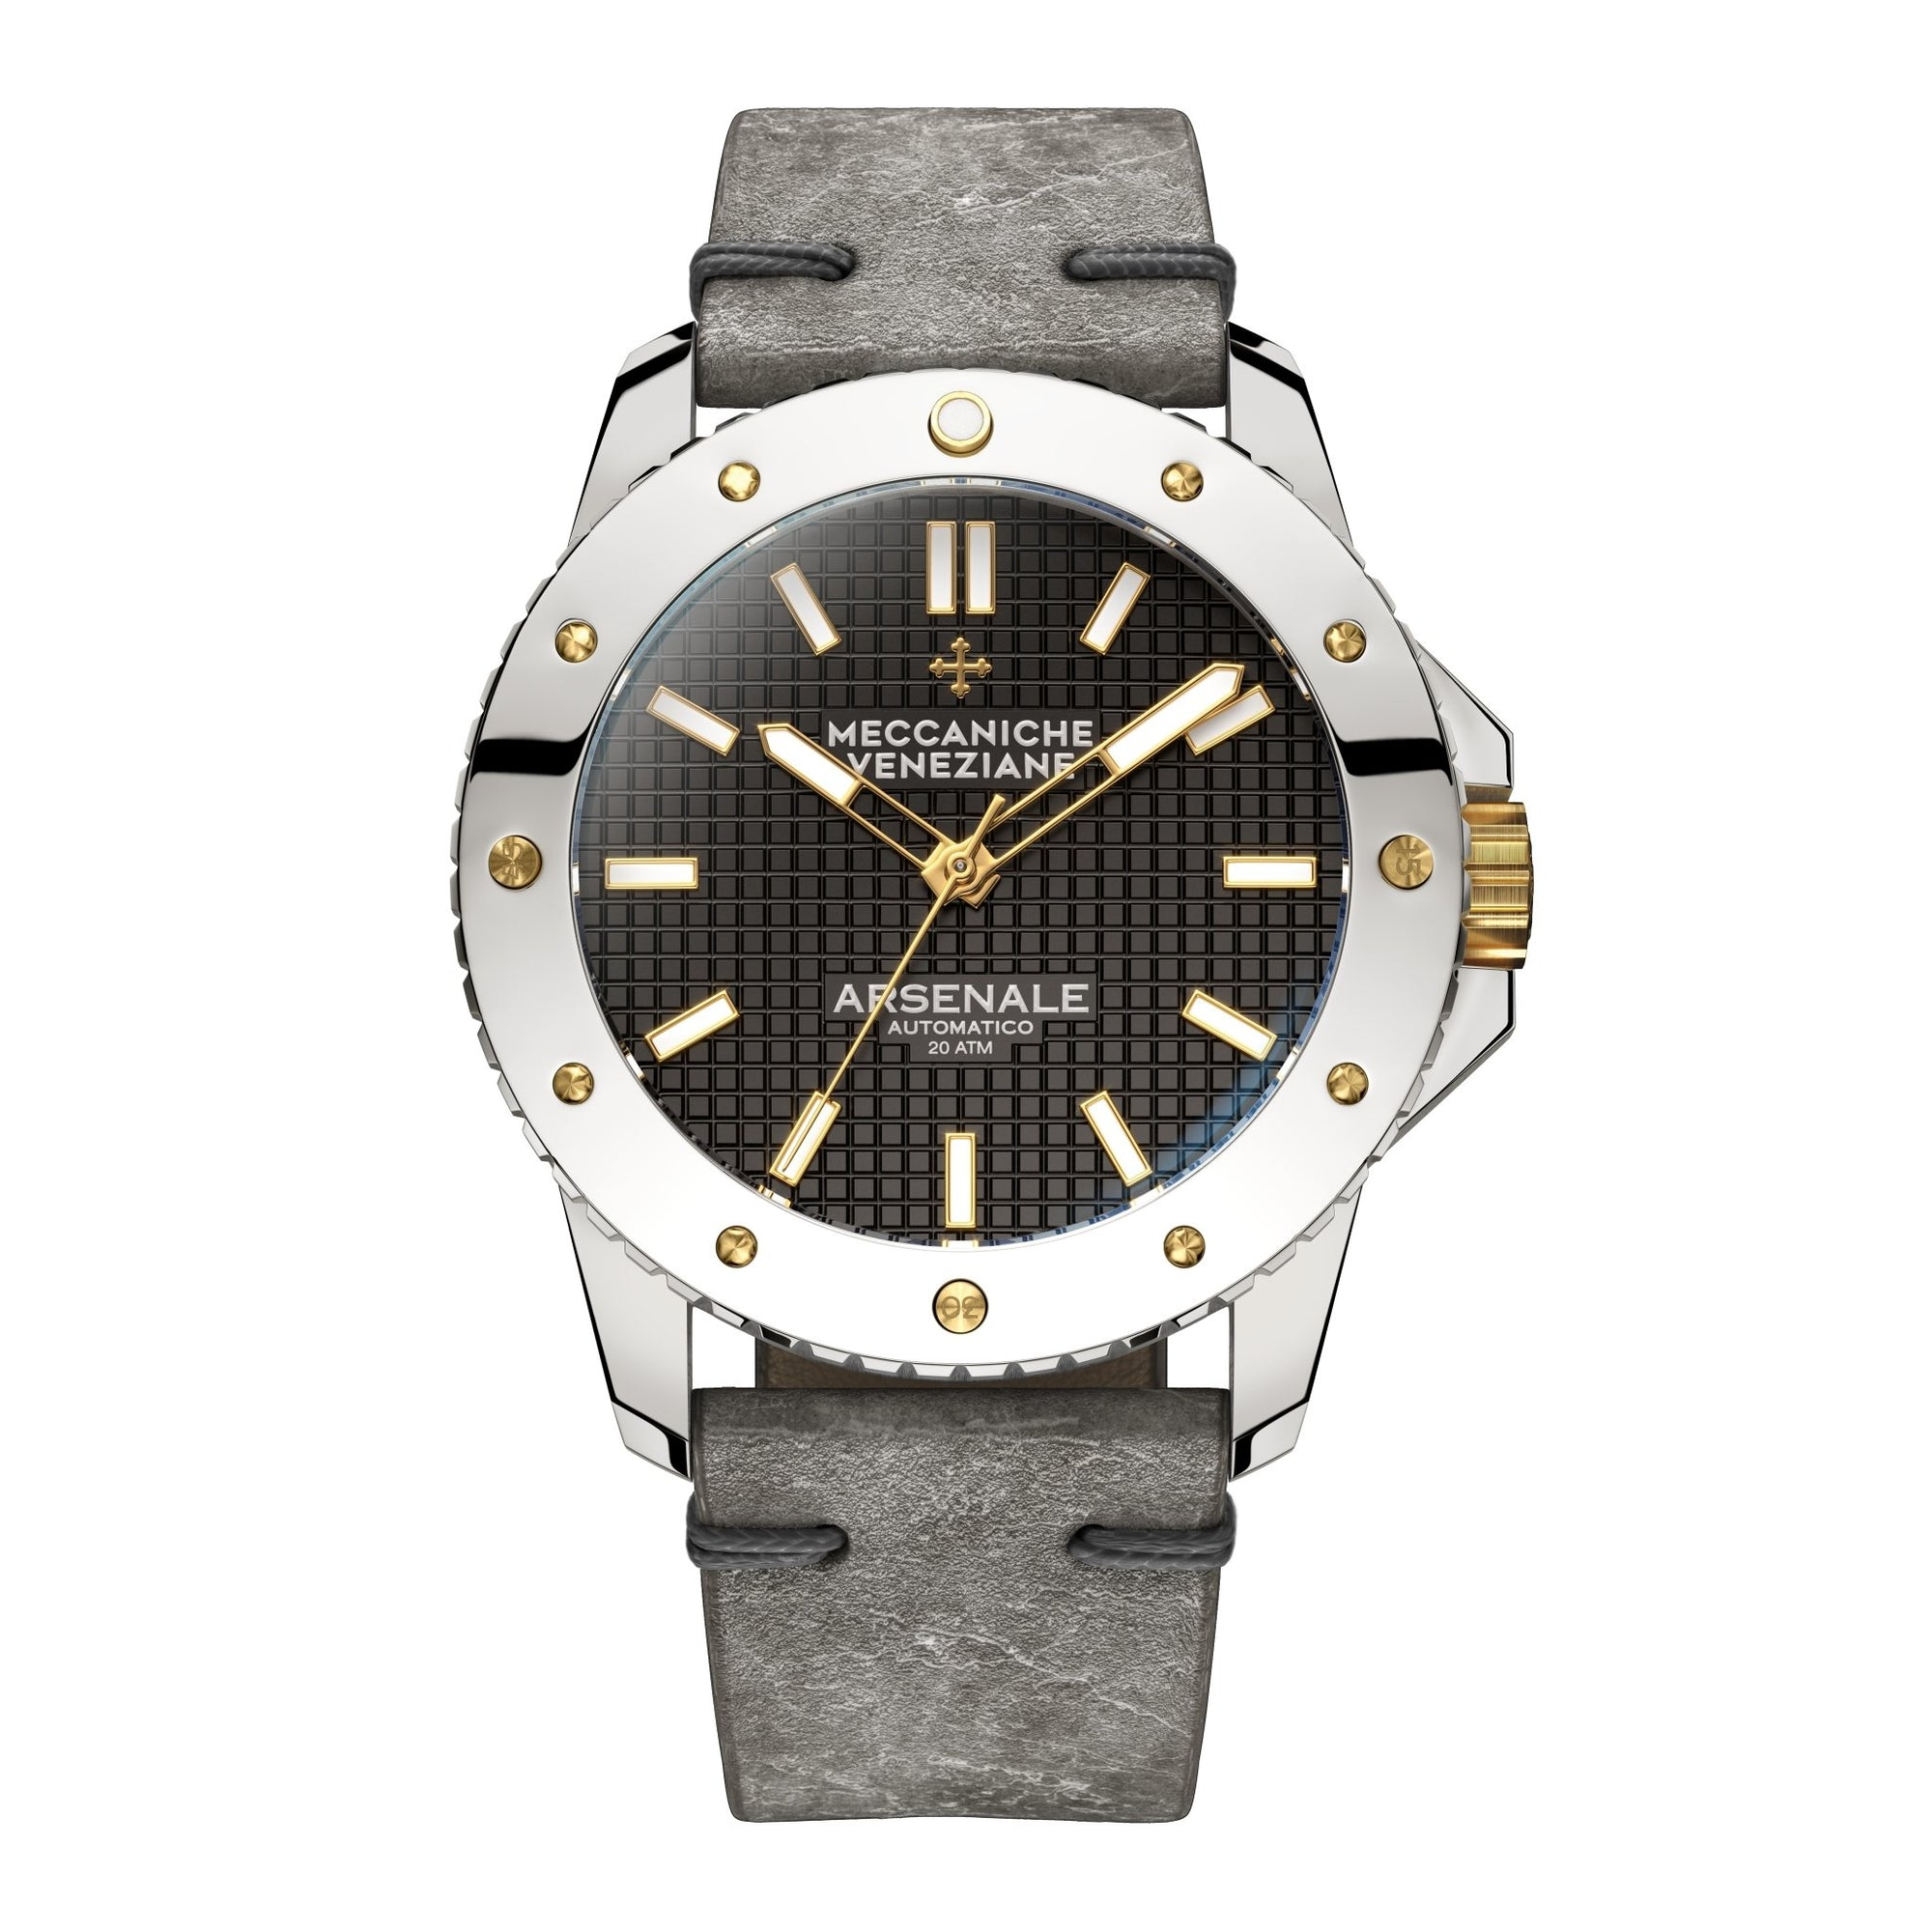 Meccaniche Veneziane Arsenale 4.0 Diver Chromed Gold - Watches & Crystals